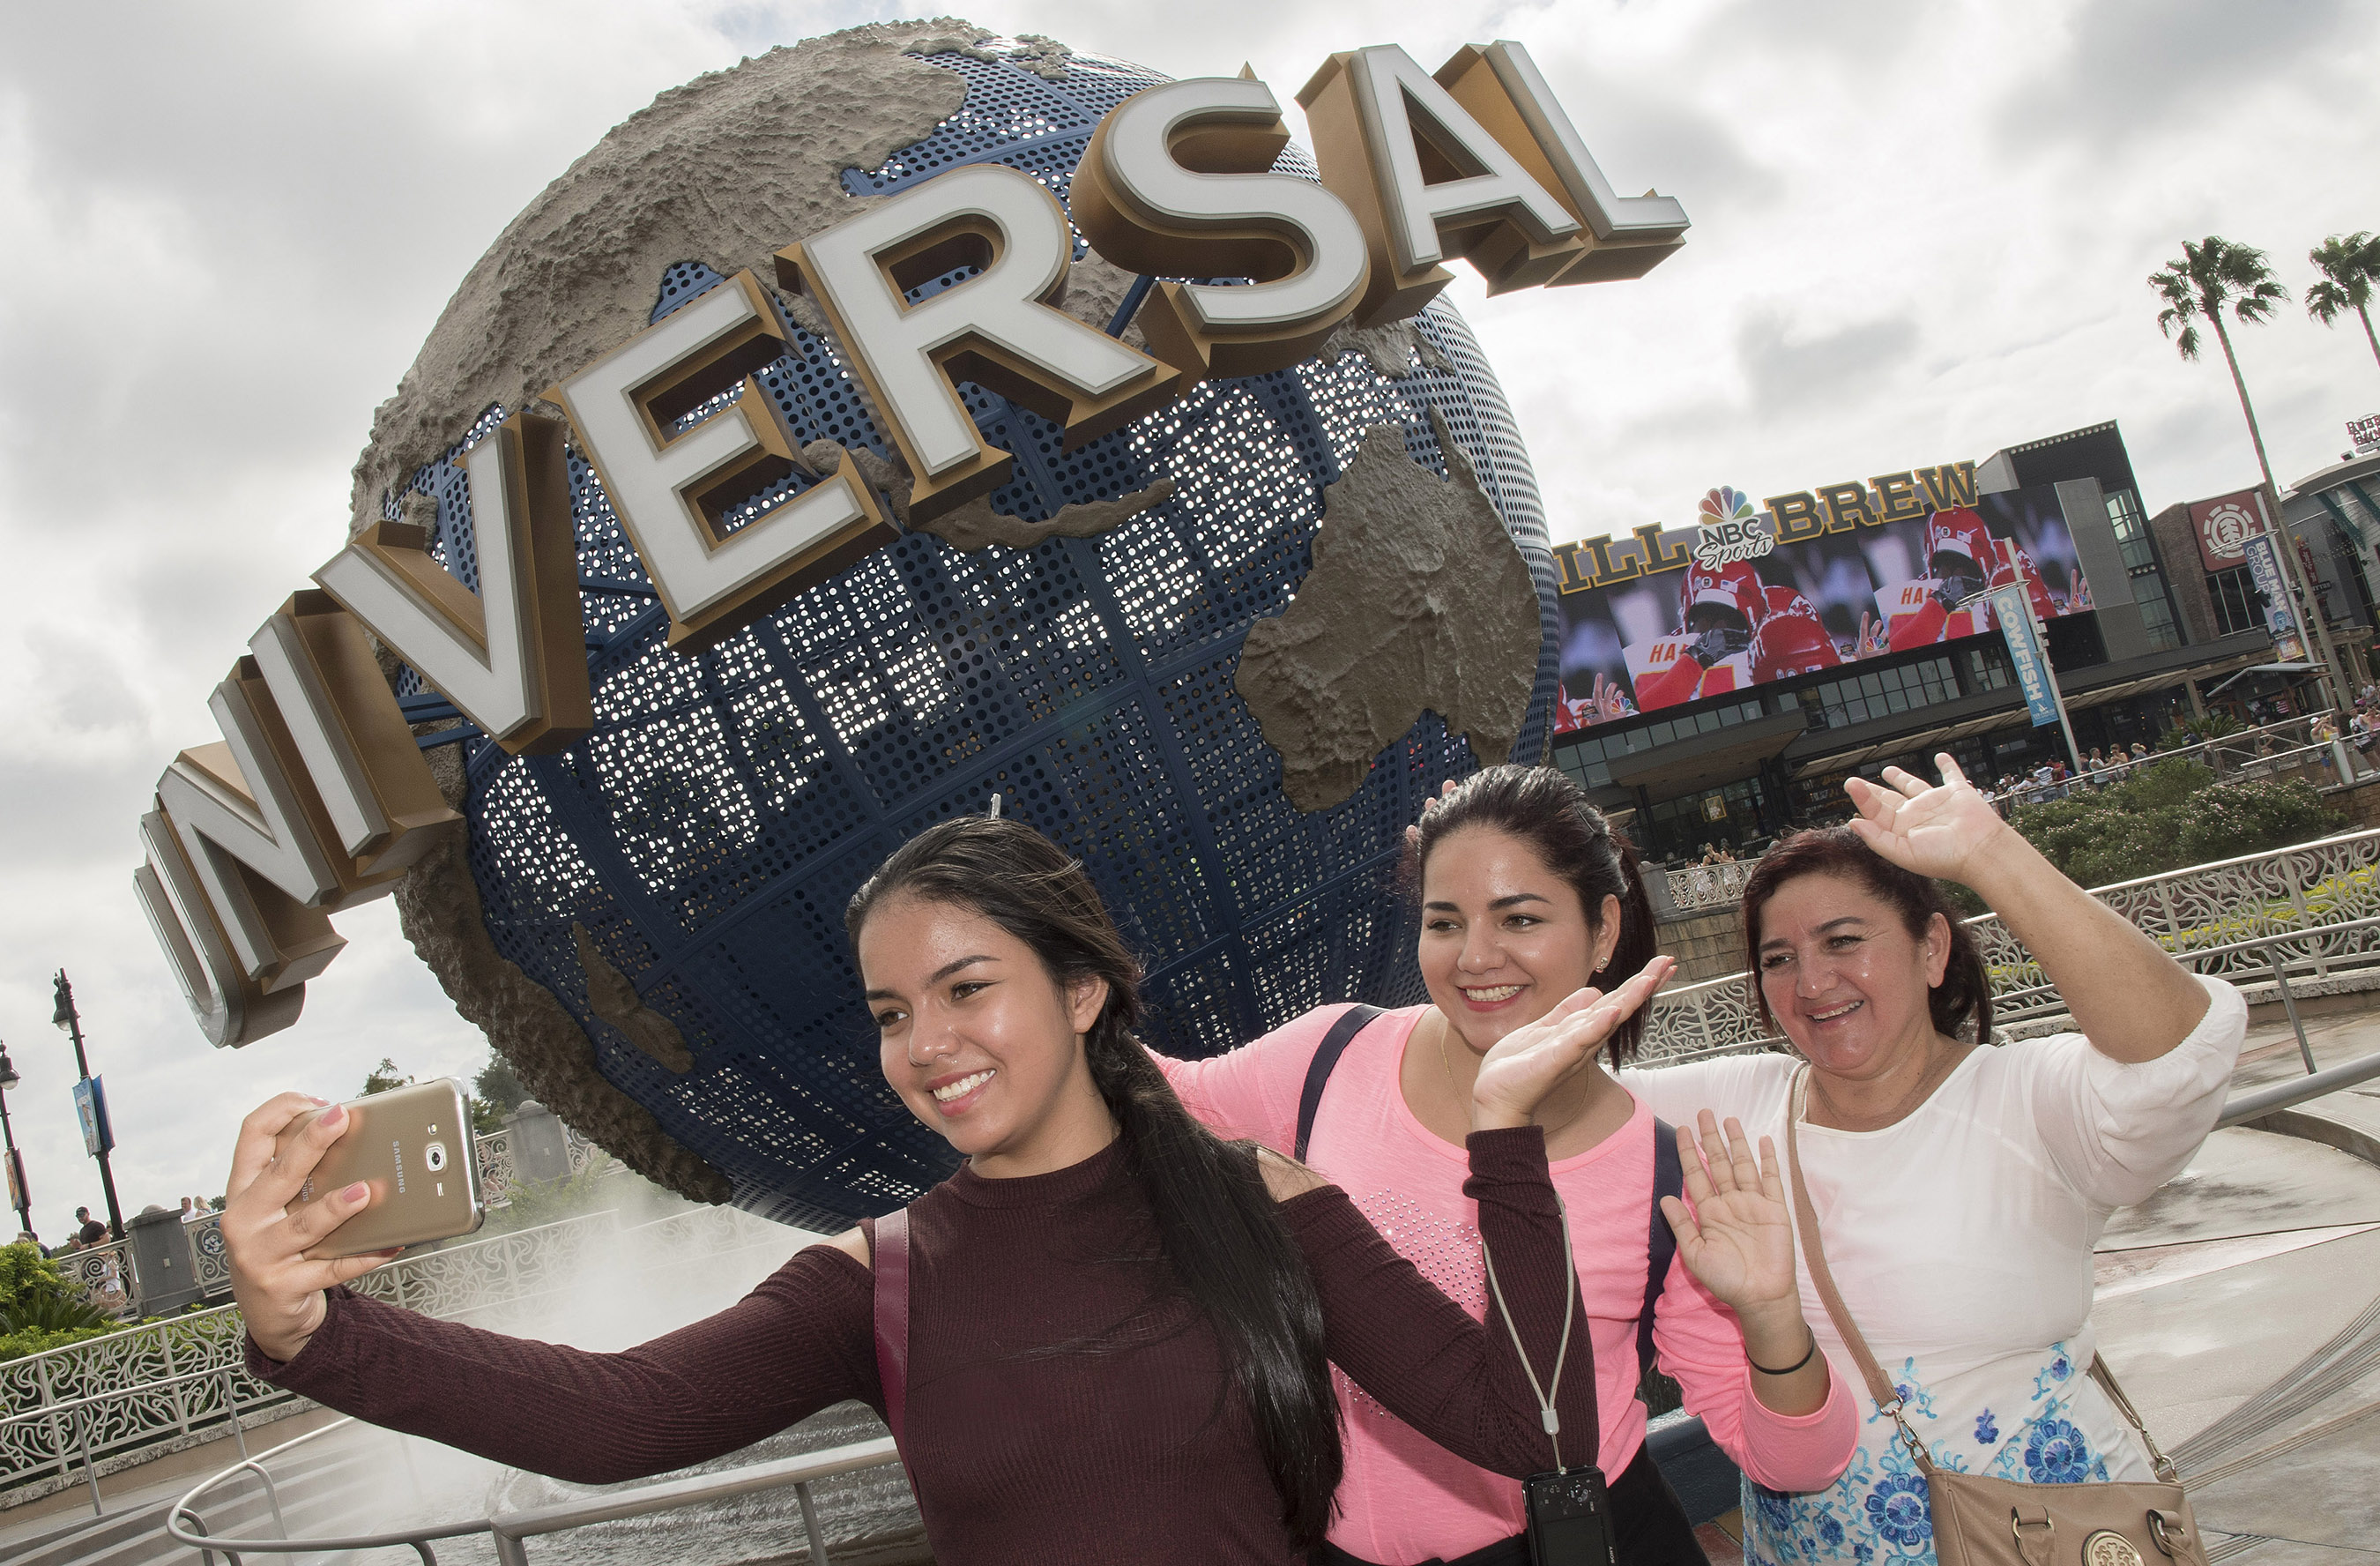 To commemorate the start of their day at Universal Orlando Resort, Olga Rodiguez and Ambar and Michell Cuichan from Guayaquil, Ecuador pose for a selfie.